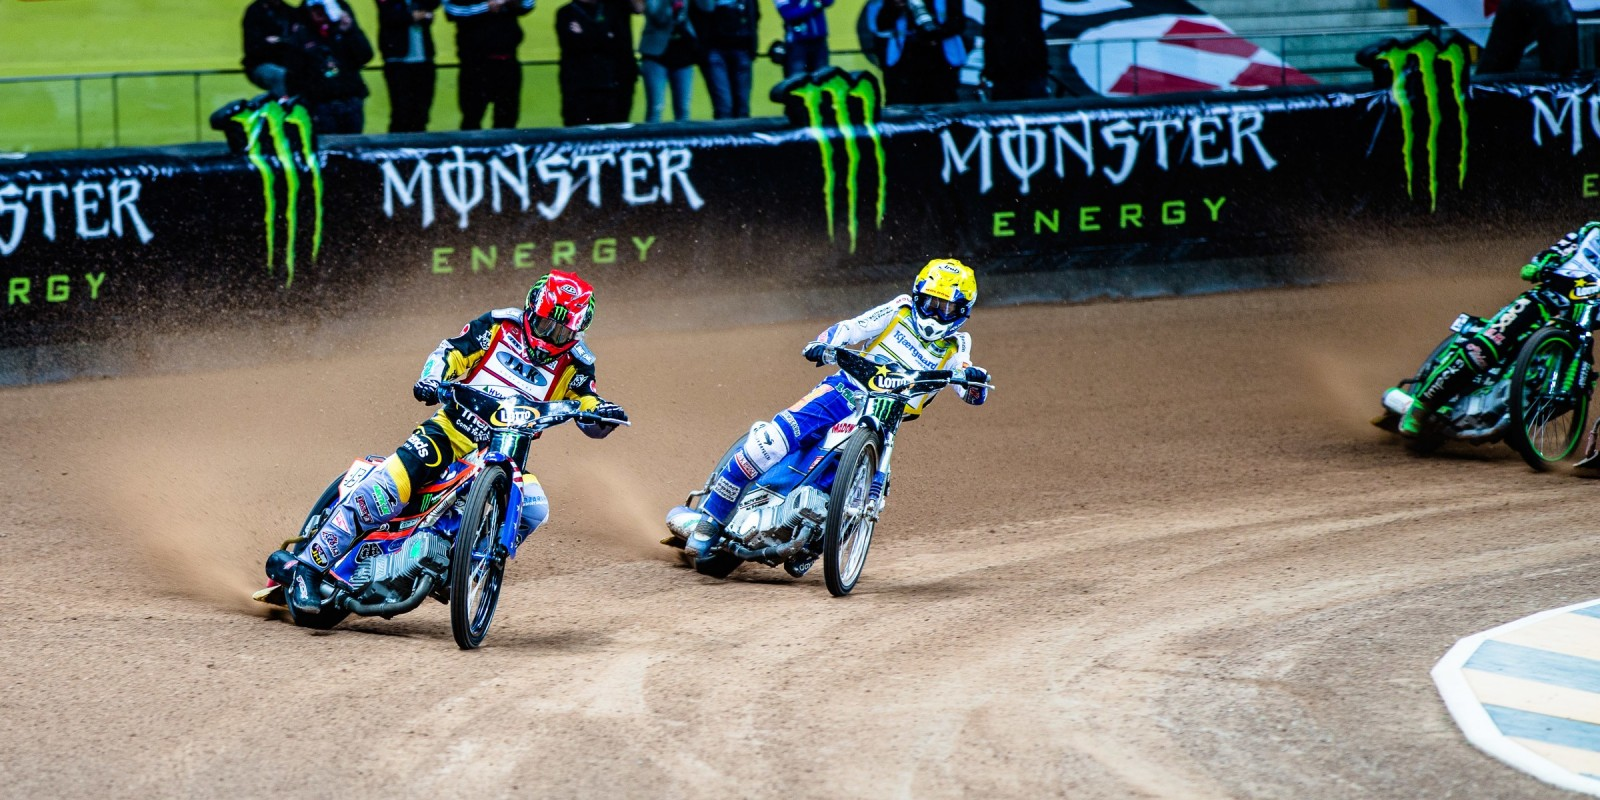 Images from round 2 of the Speedway Grand Prix series from Warsaw, Poland